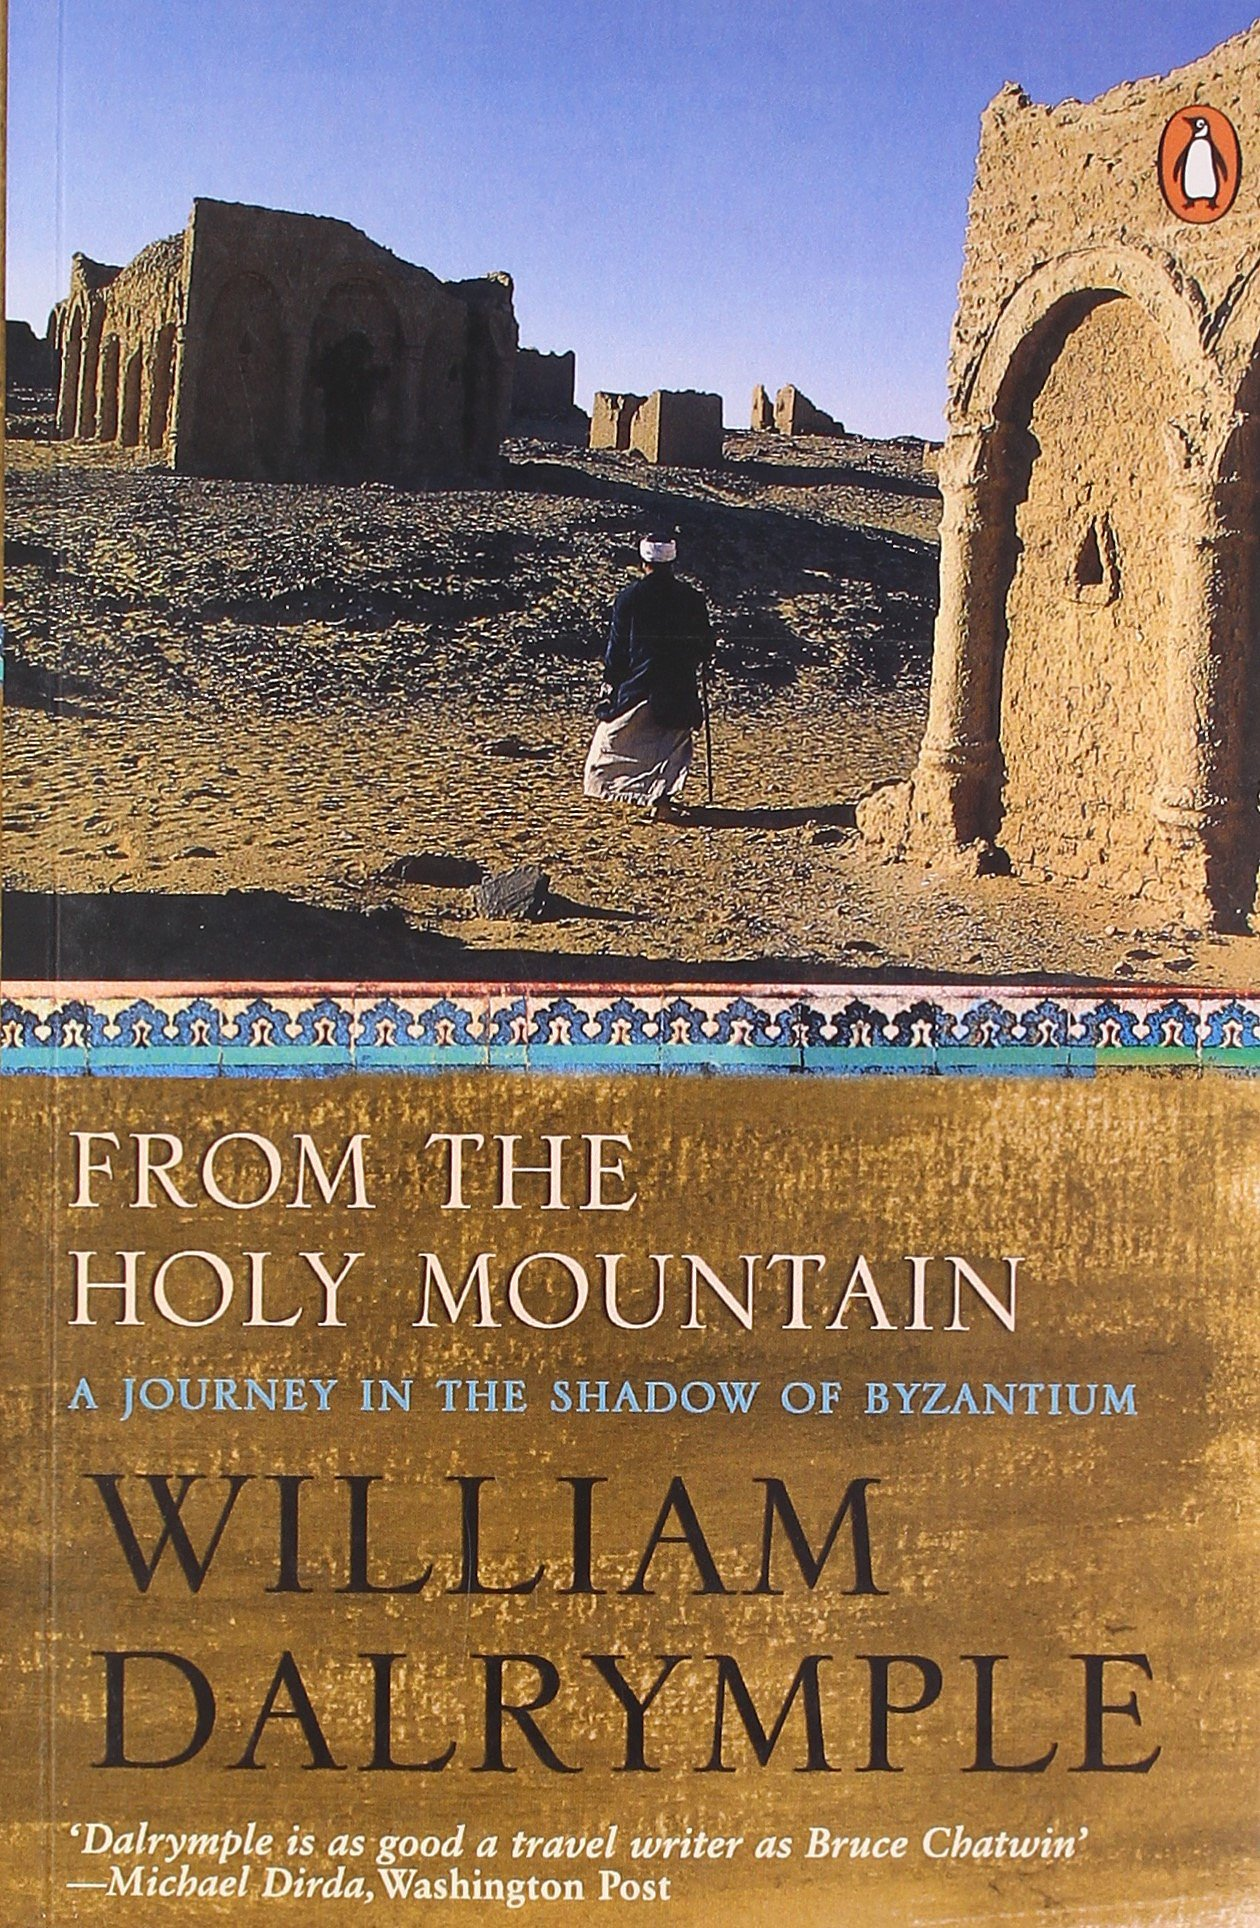 Buy From The Holy Mountain: A Journey In The Shadow Of Byzantium Book  Online at Low Prices in India | From The Holy Mountain: A Journey In The  Shadow Of Byzantium Reviews